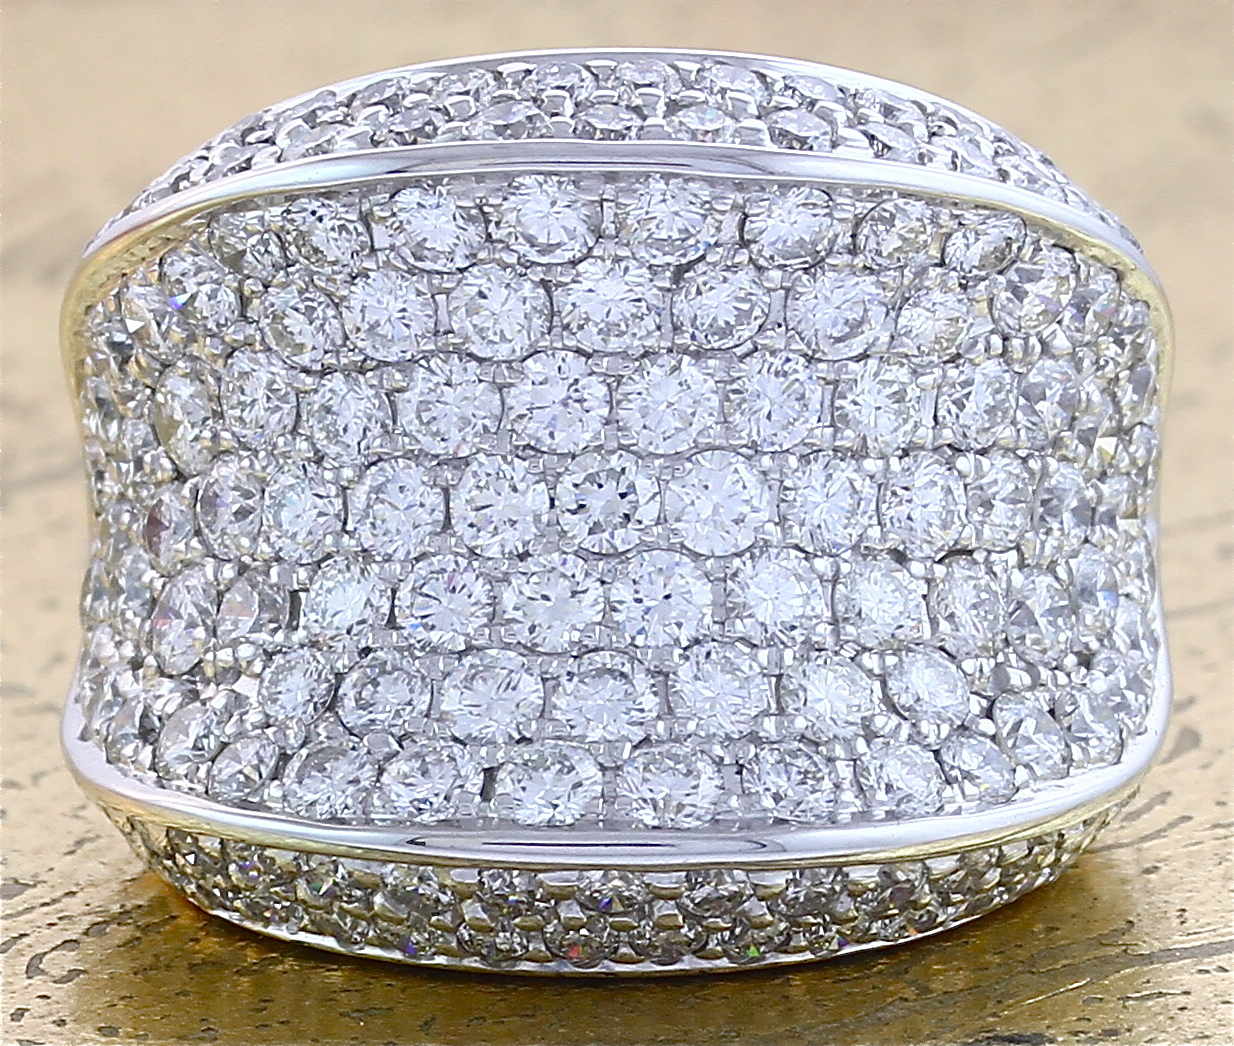 Cocktail Diamond Ring 7 Rows - Item No: 0011109A